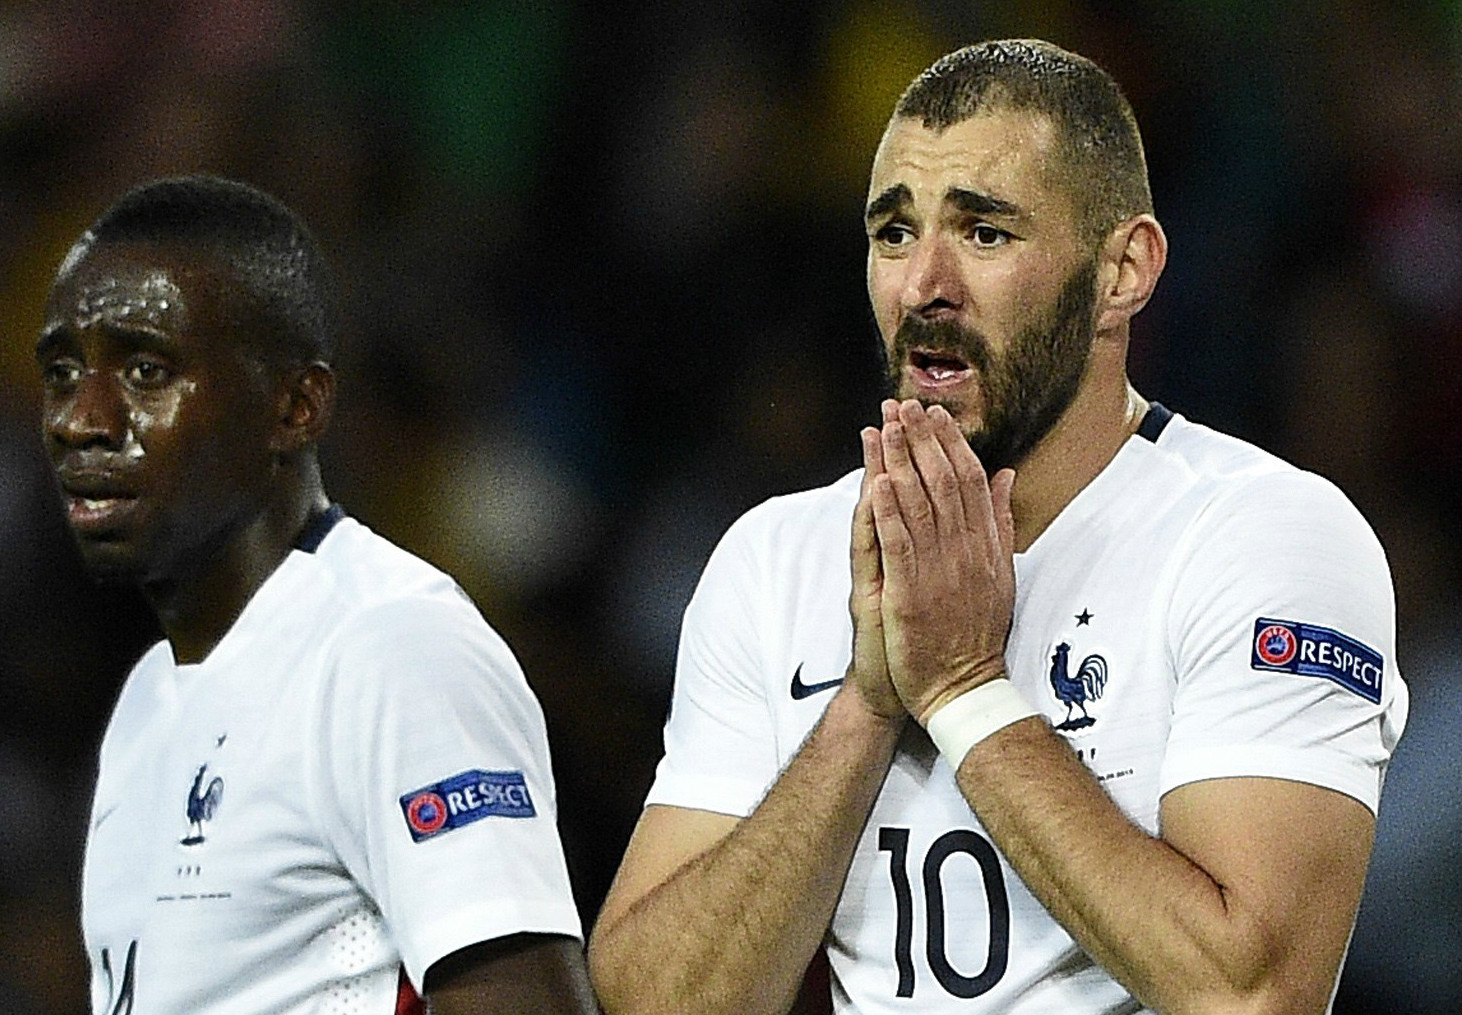 Euro 2016 comment benzema no victim of islamophobia goal merah who was referenced in the note to baghdad killed seven people in 2012 including five at a jewish school after an eight day anti semitic shooting voltagebd Gallery